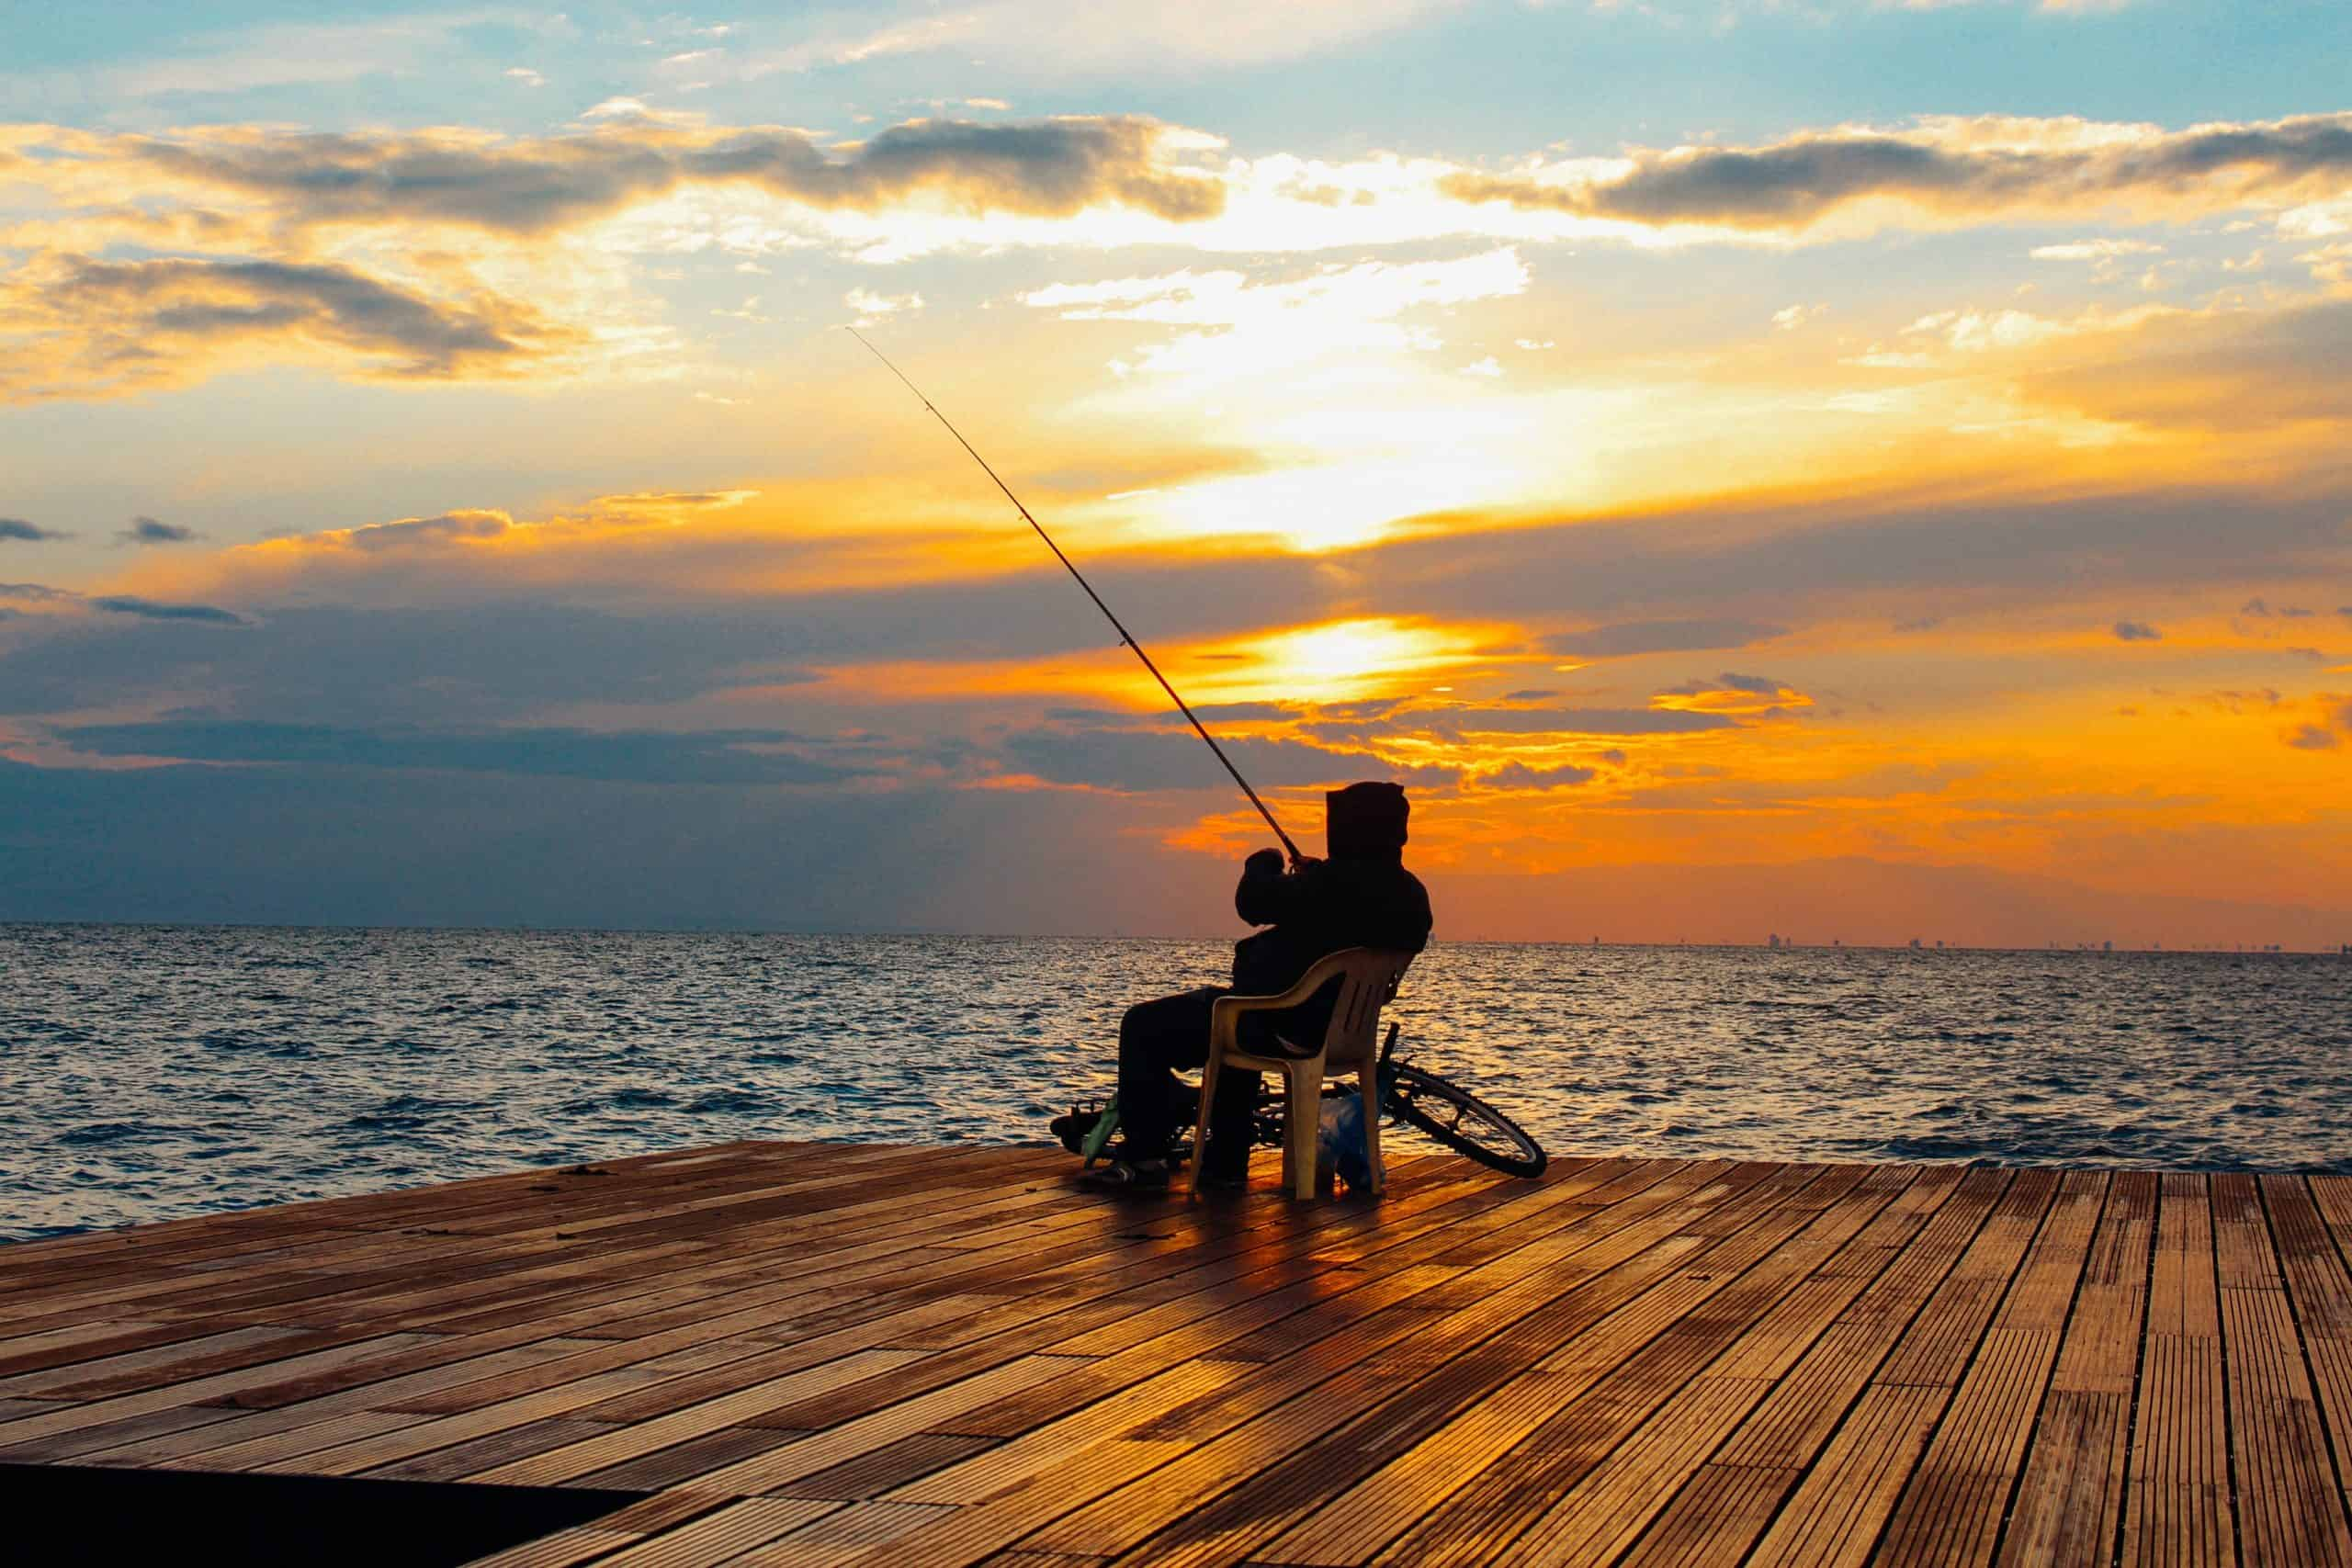 Saltwater Fishing Tackle: Find Out A Few Amazing Ones